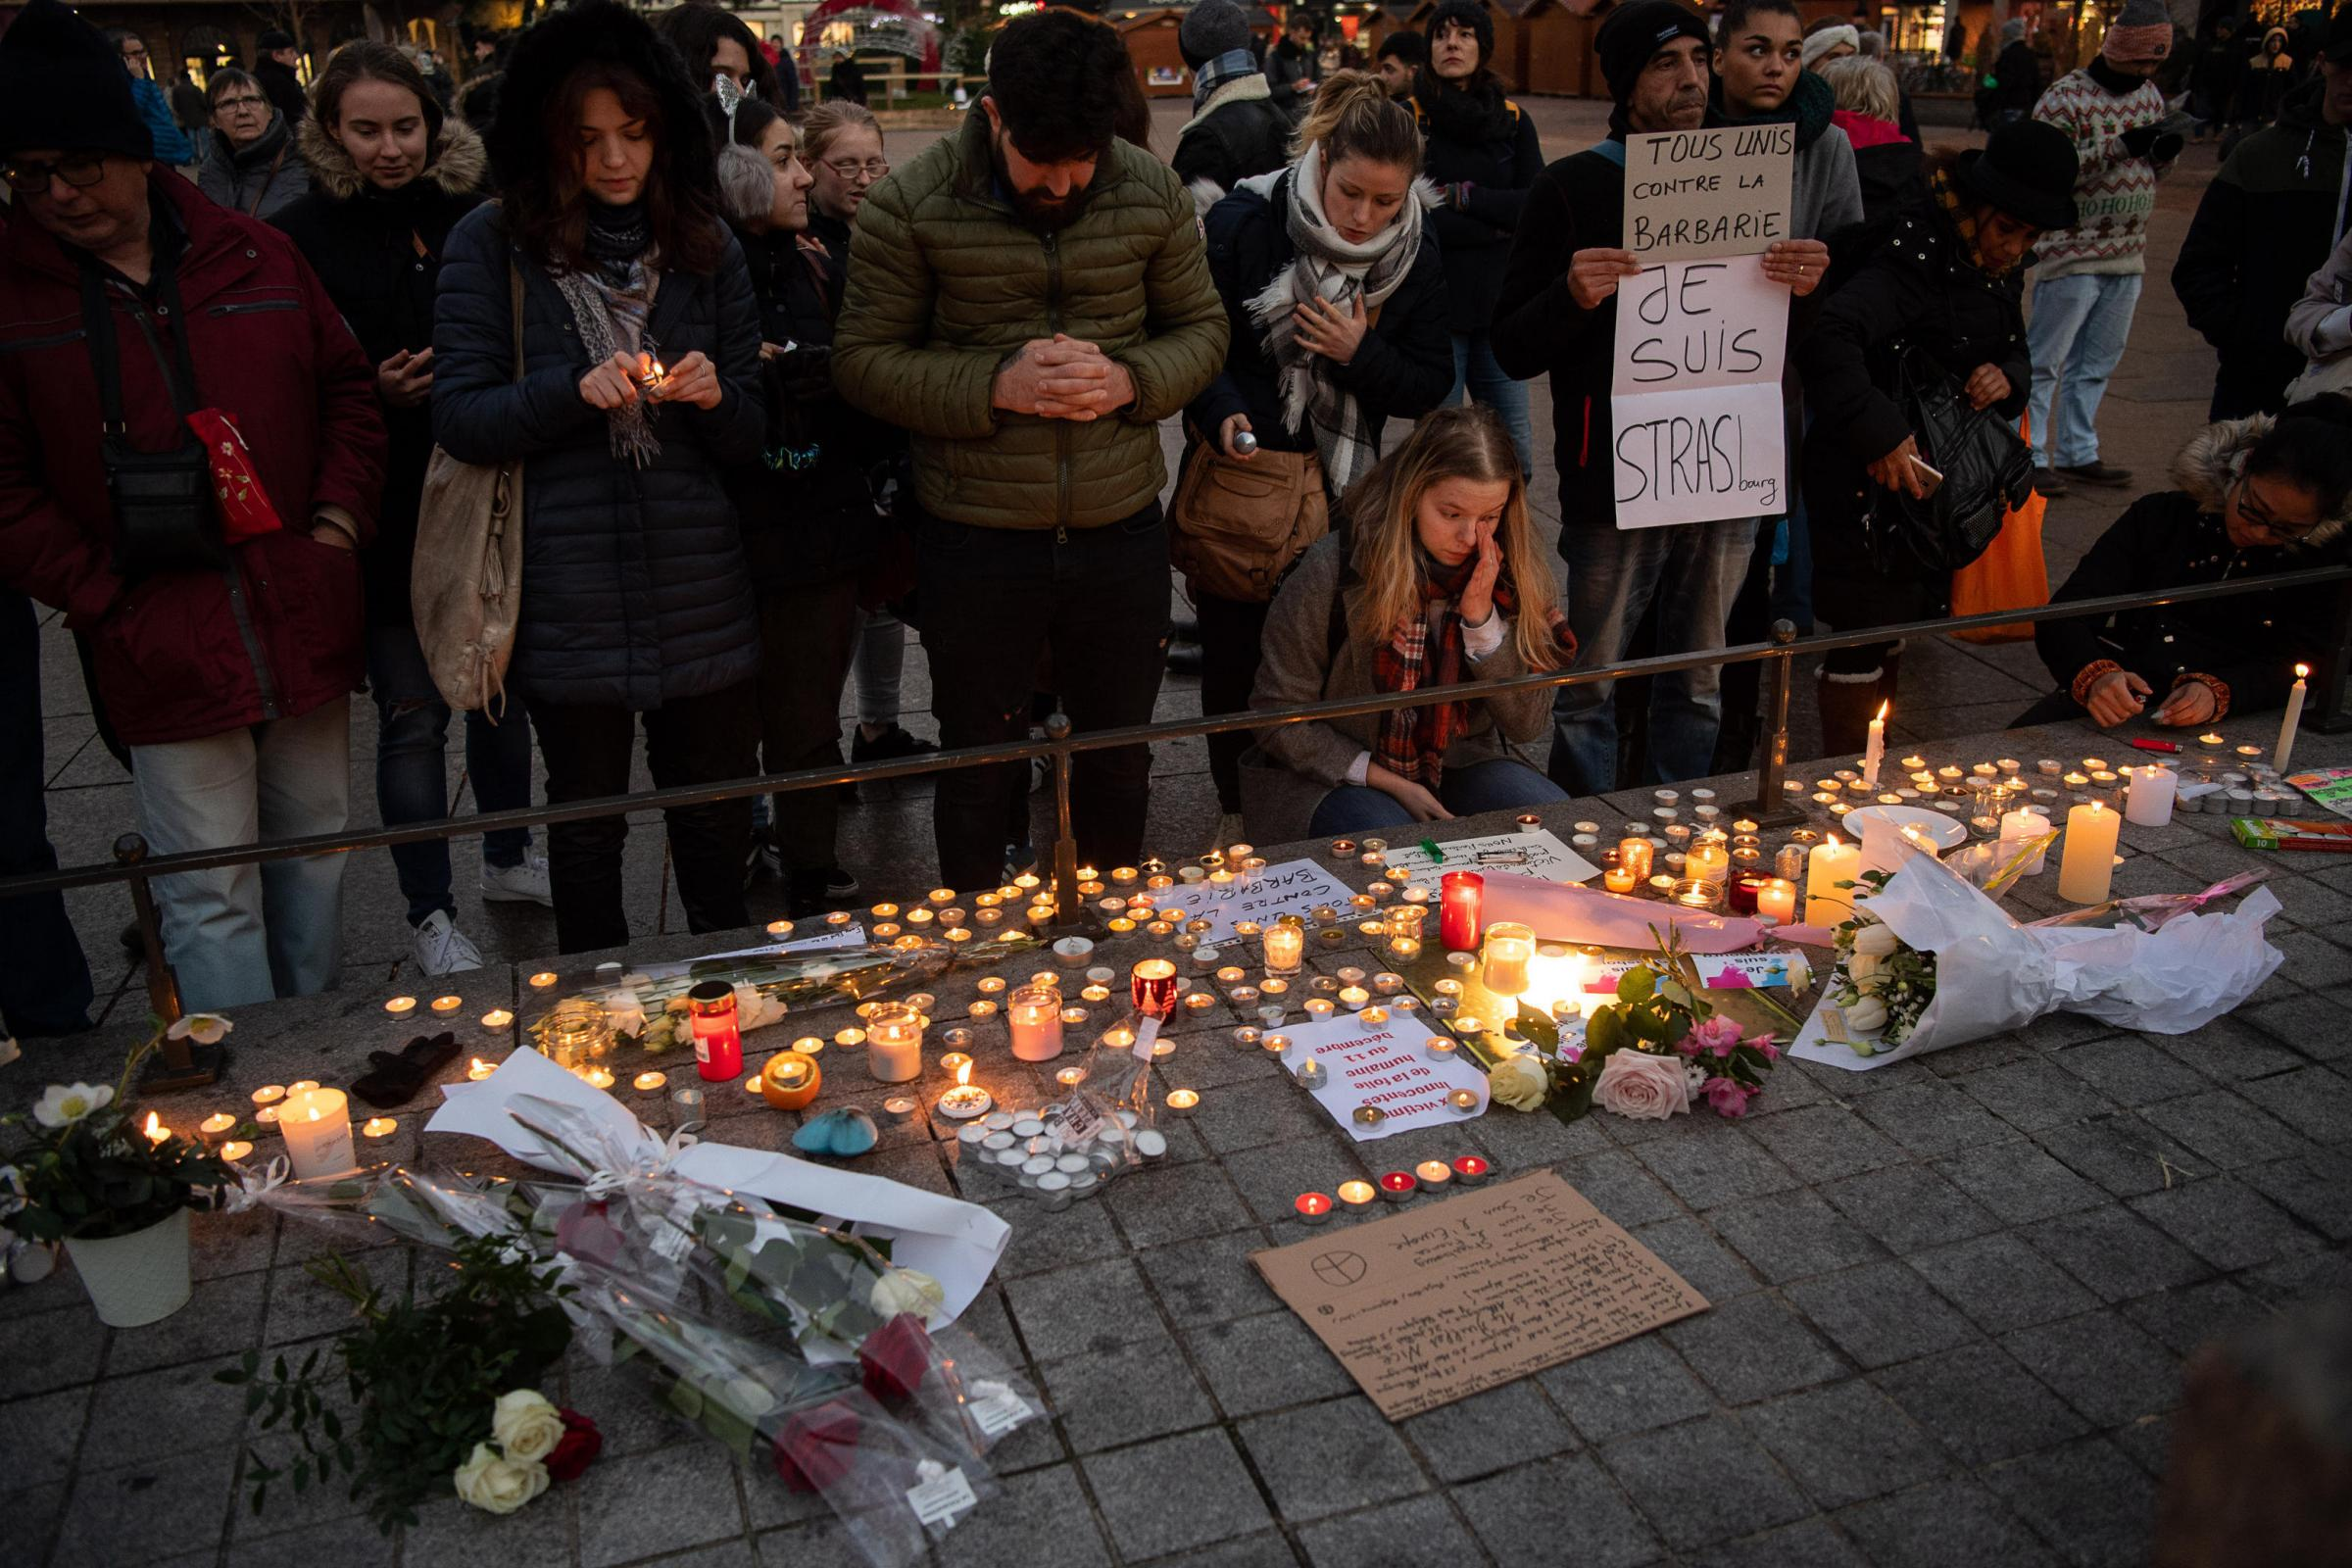 Alamy Live News. R833JW Strasbourg, France. 12 December 2018, France (France), StraBburg: Mourners stand near the Strasbourg Christmas market behind numerous burning candles. The investigators assume that the deadly attack last night was a terrorist attac